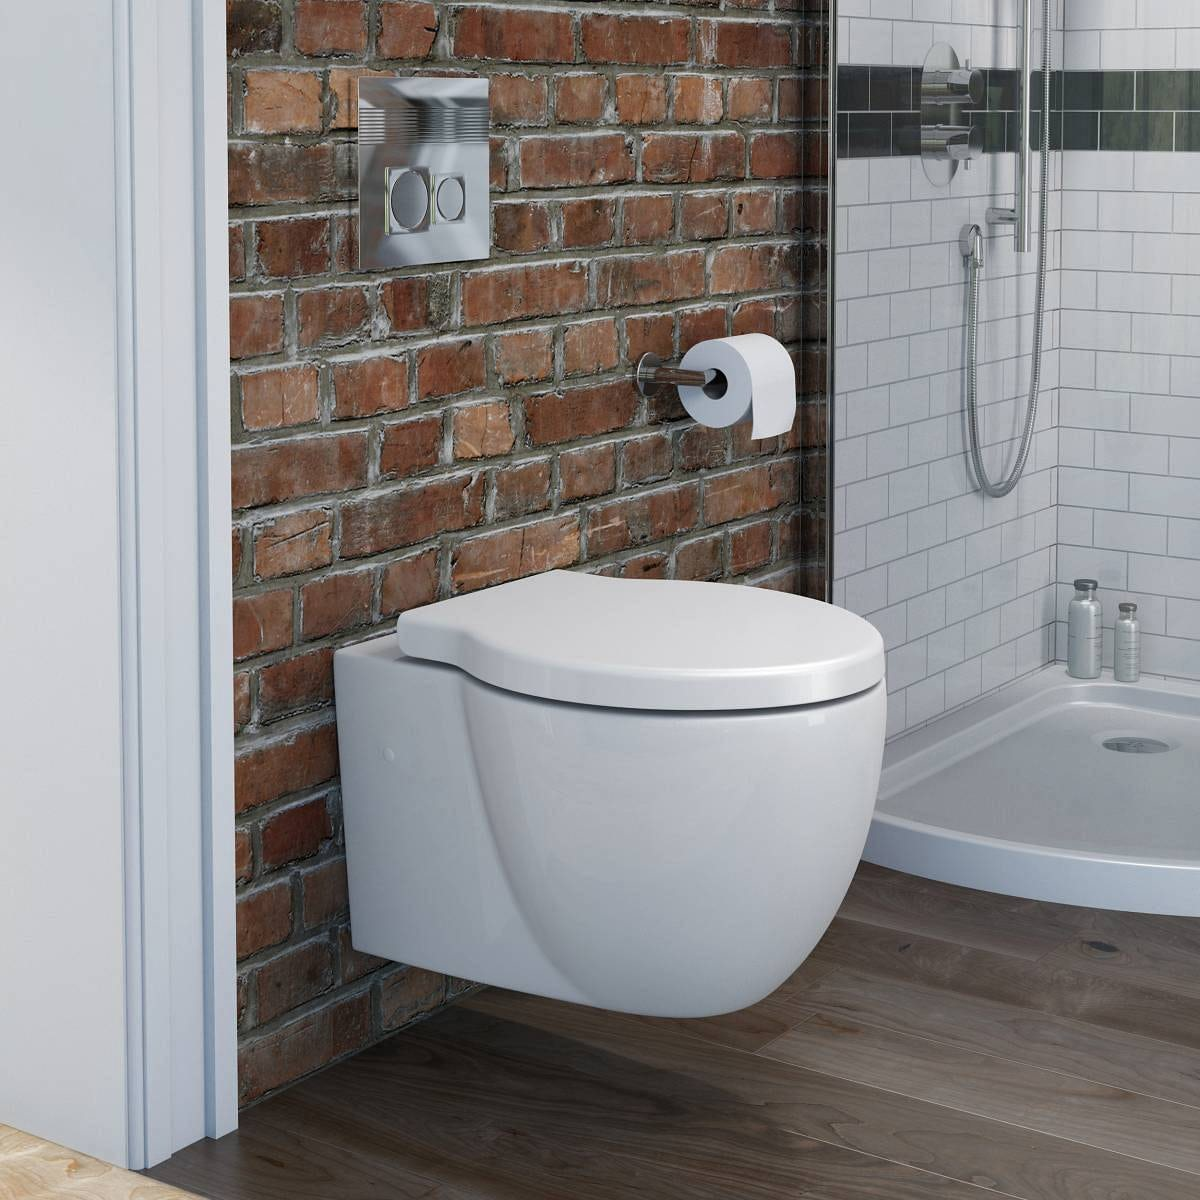 toilet clearance from wall maine wall hung toilet inc luxury soft seat 6275